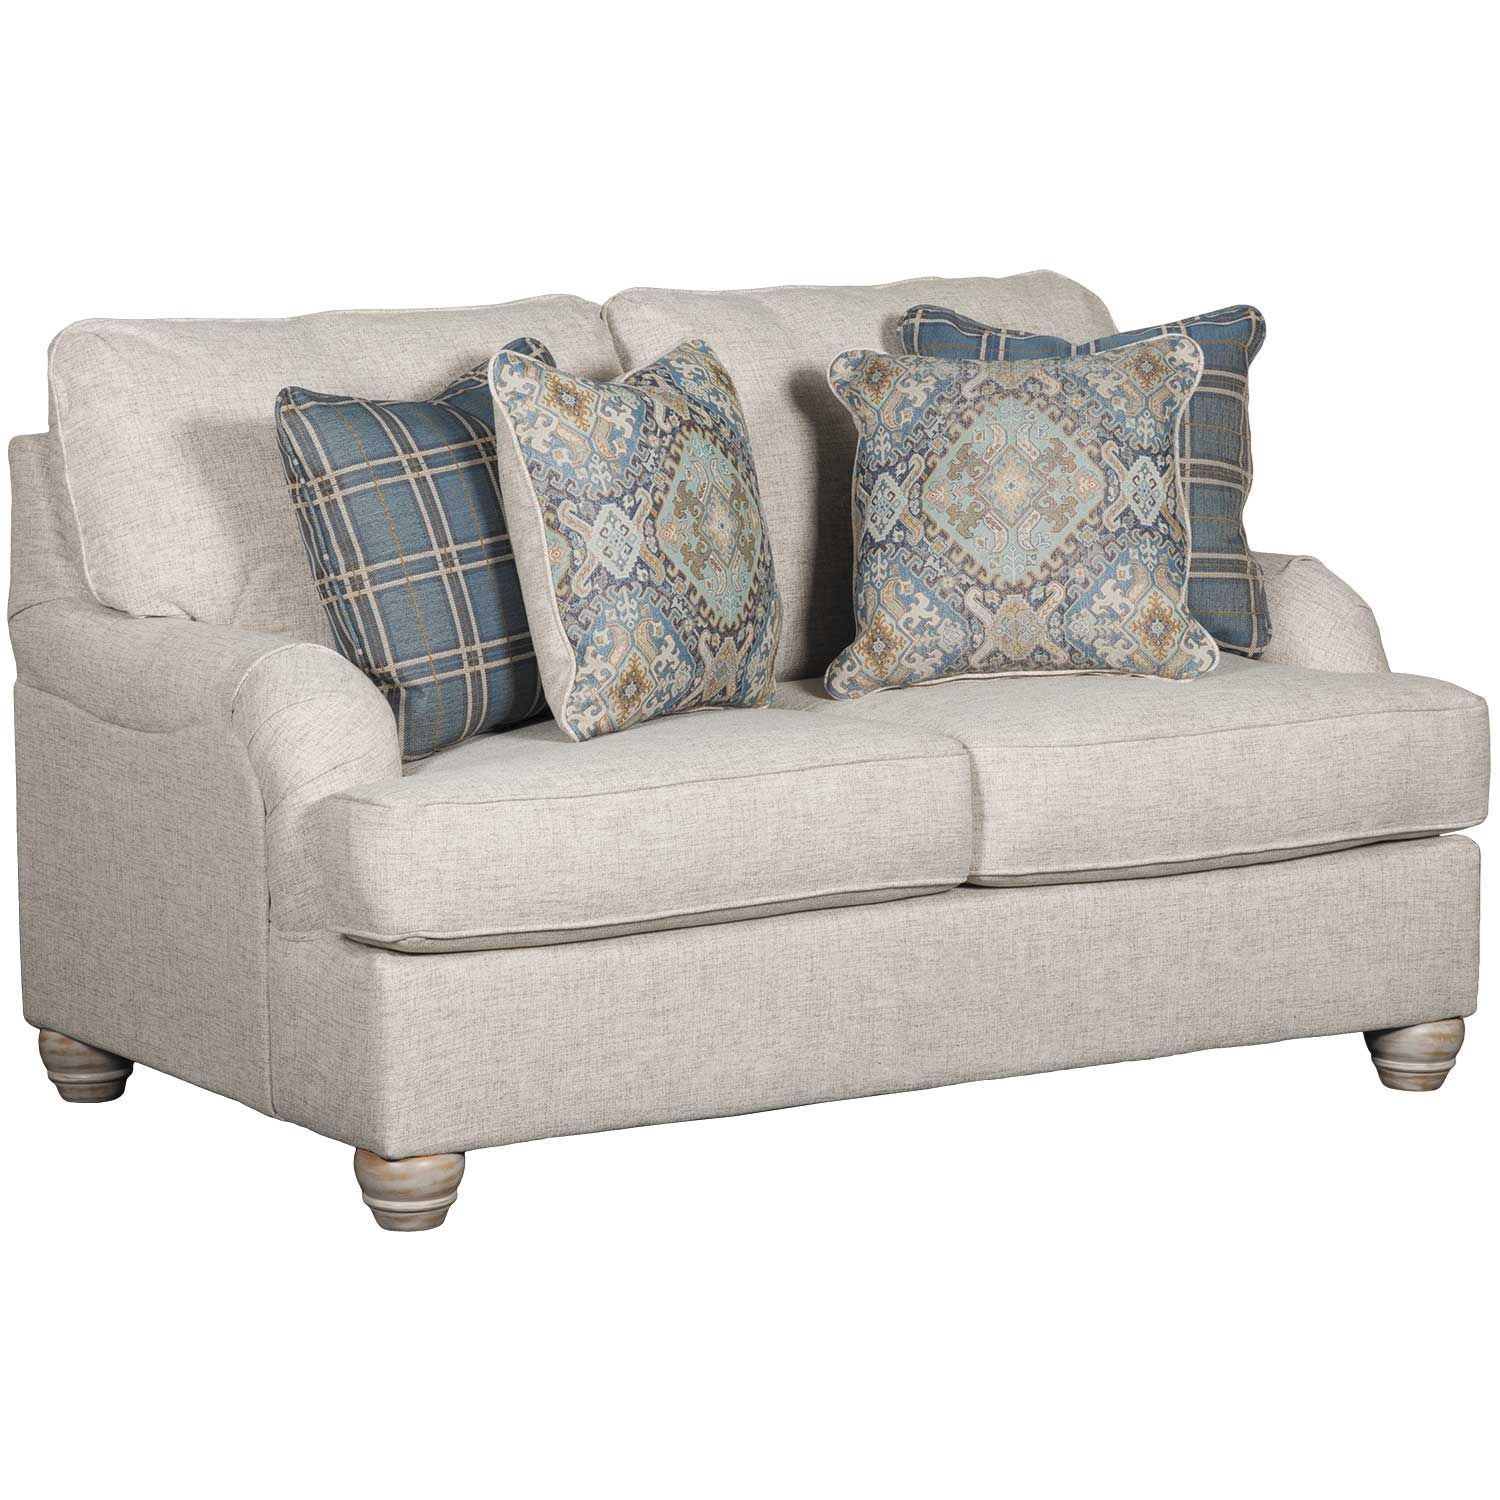 Ashley Furniture Accent Pillows